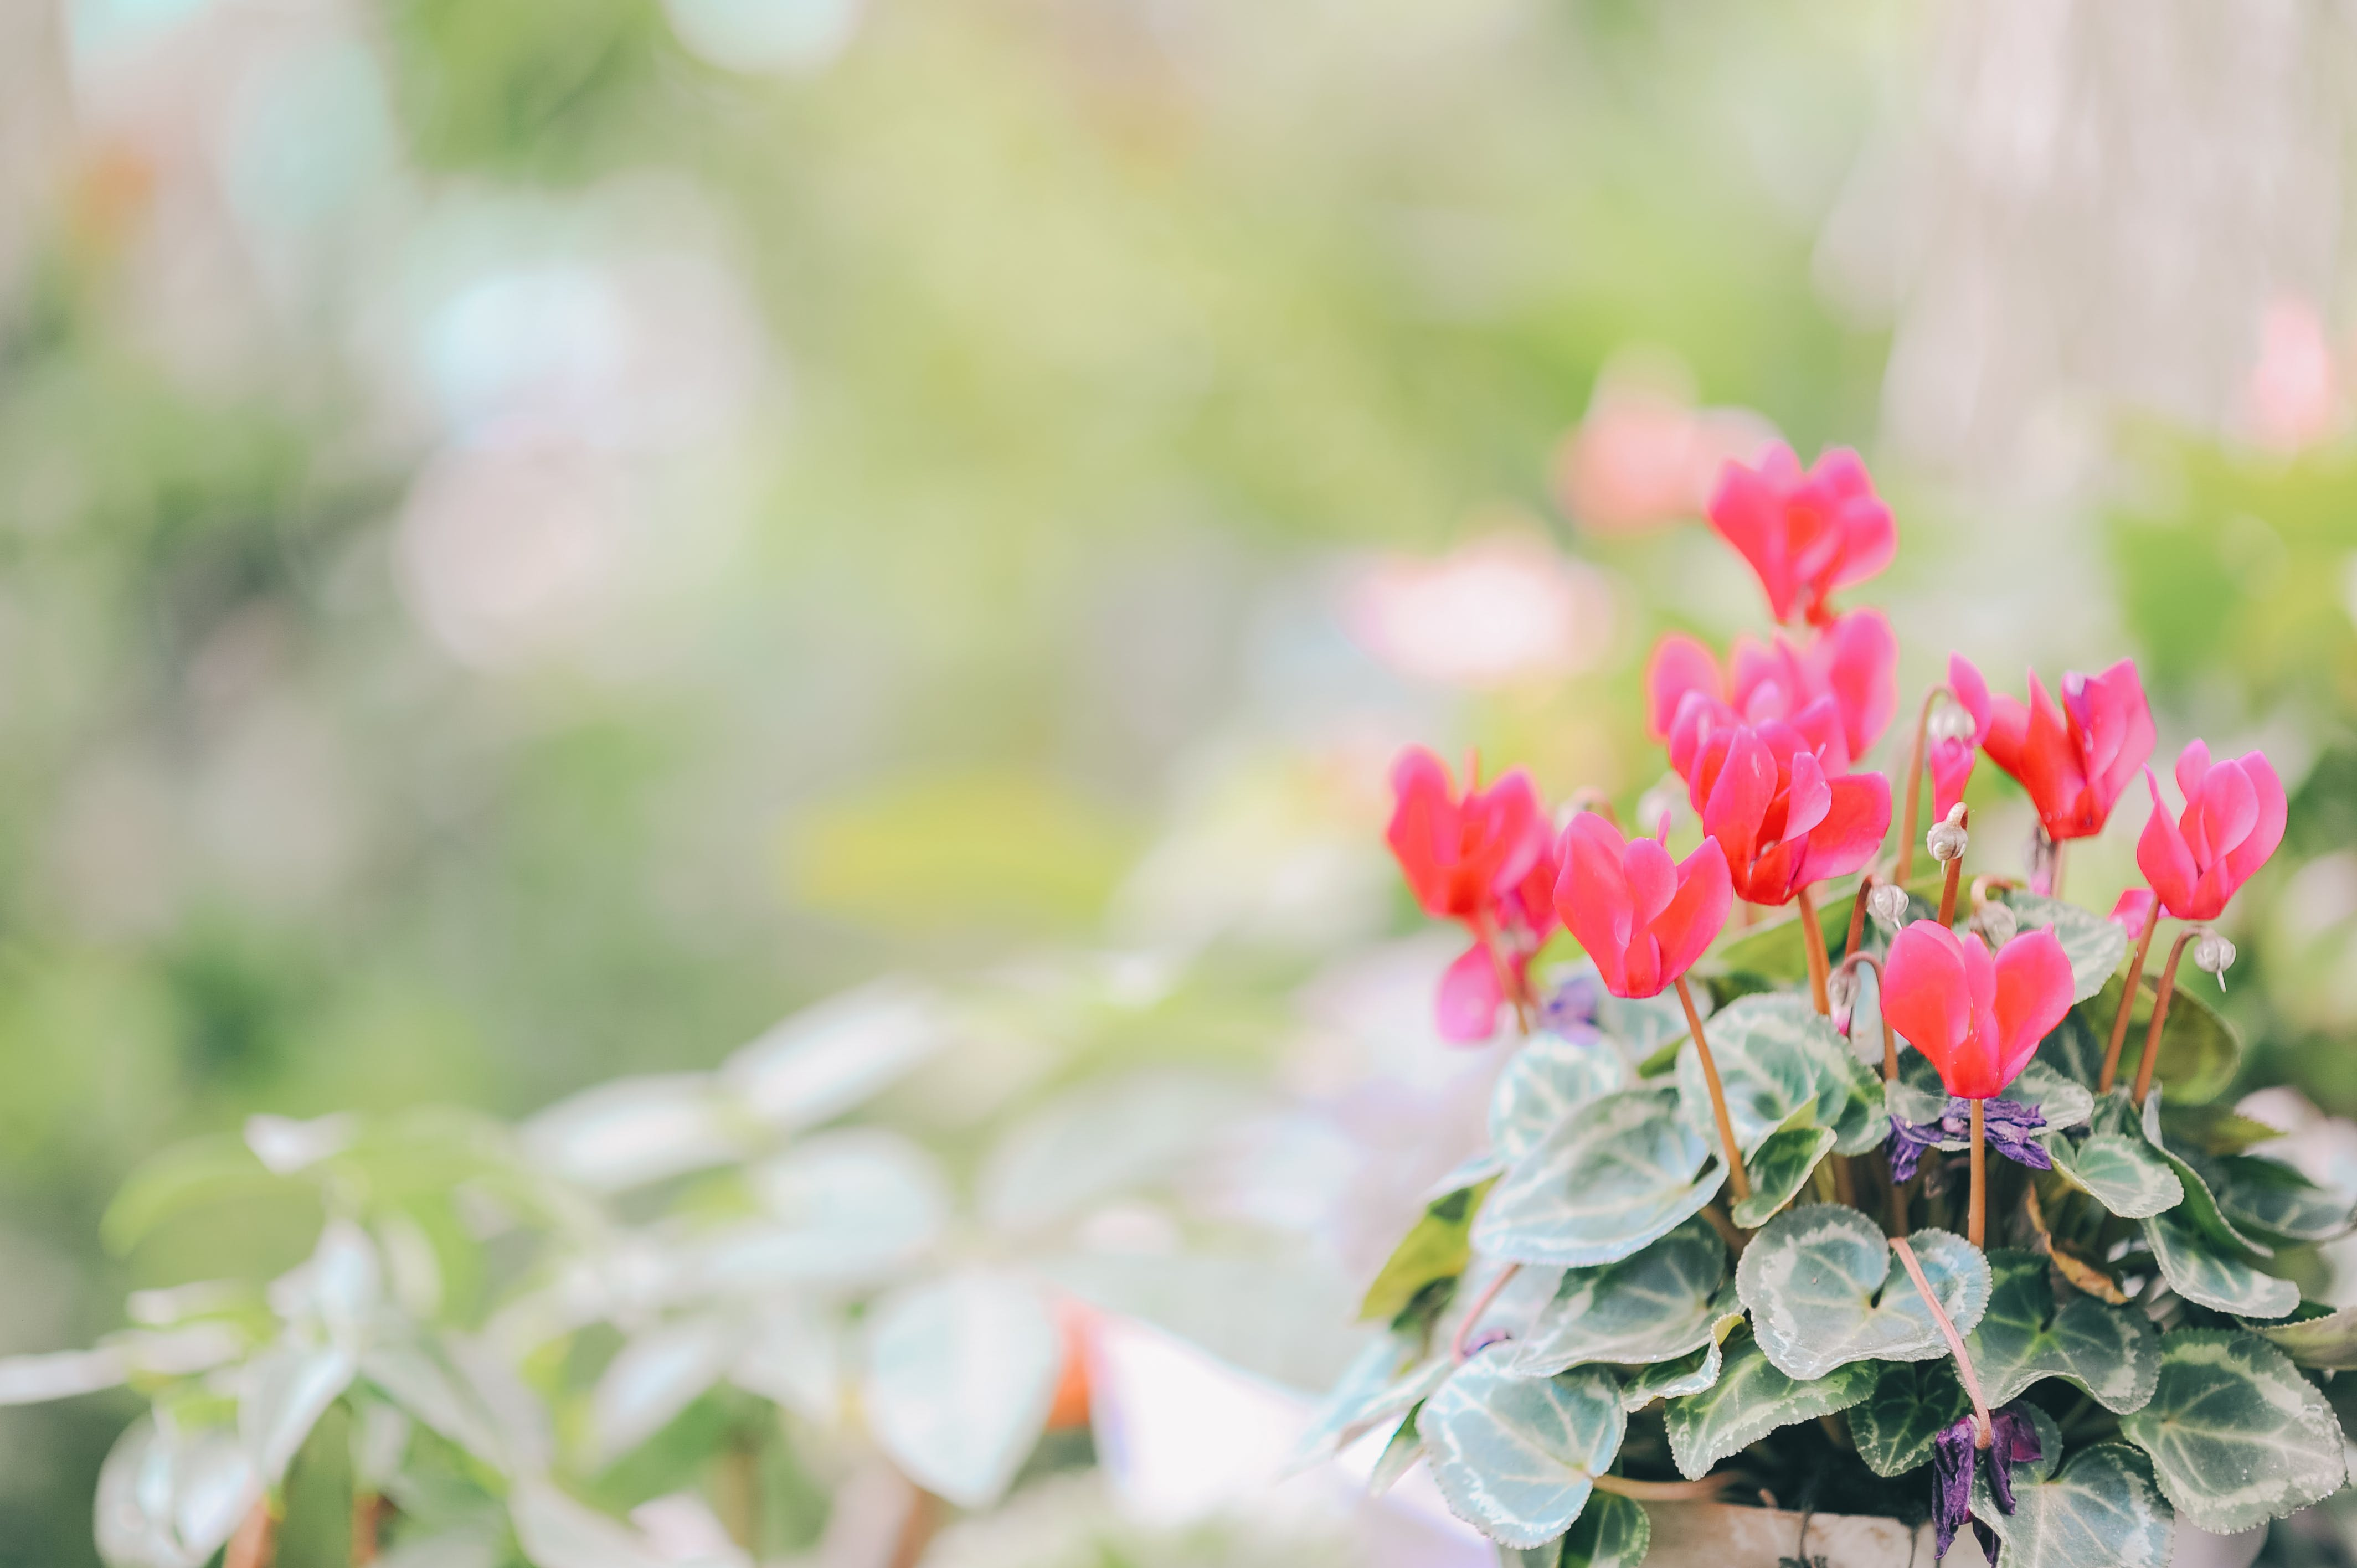 Close-up Photography of Red Petaled Flowers